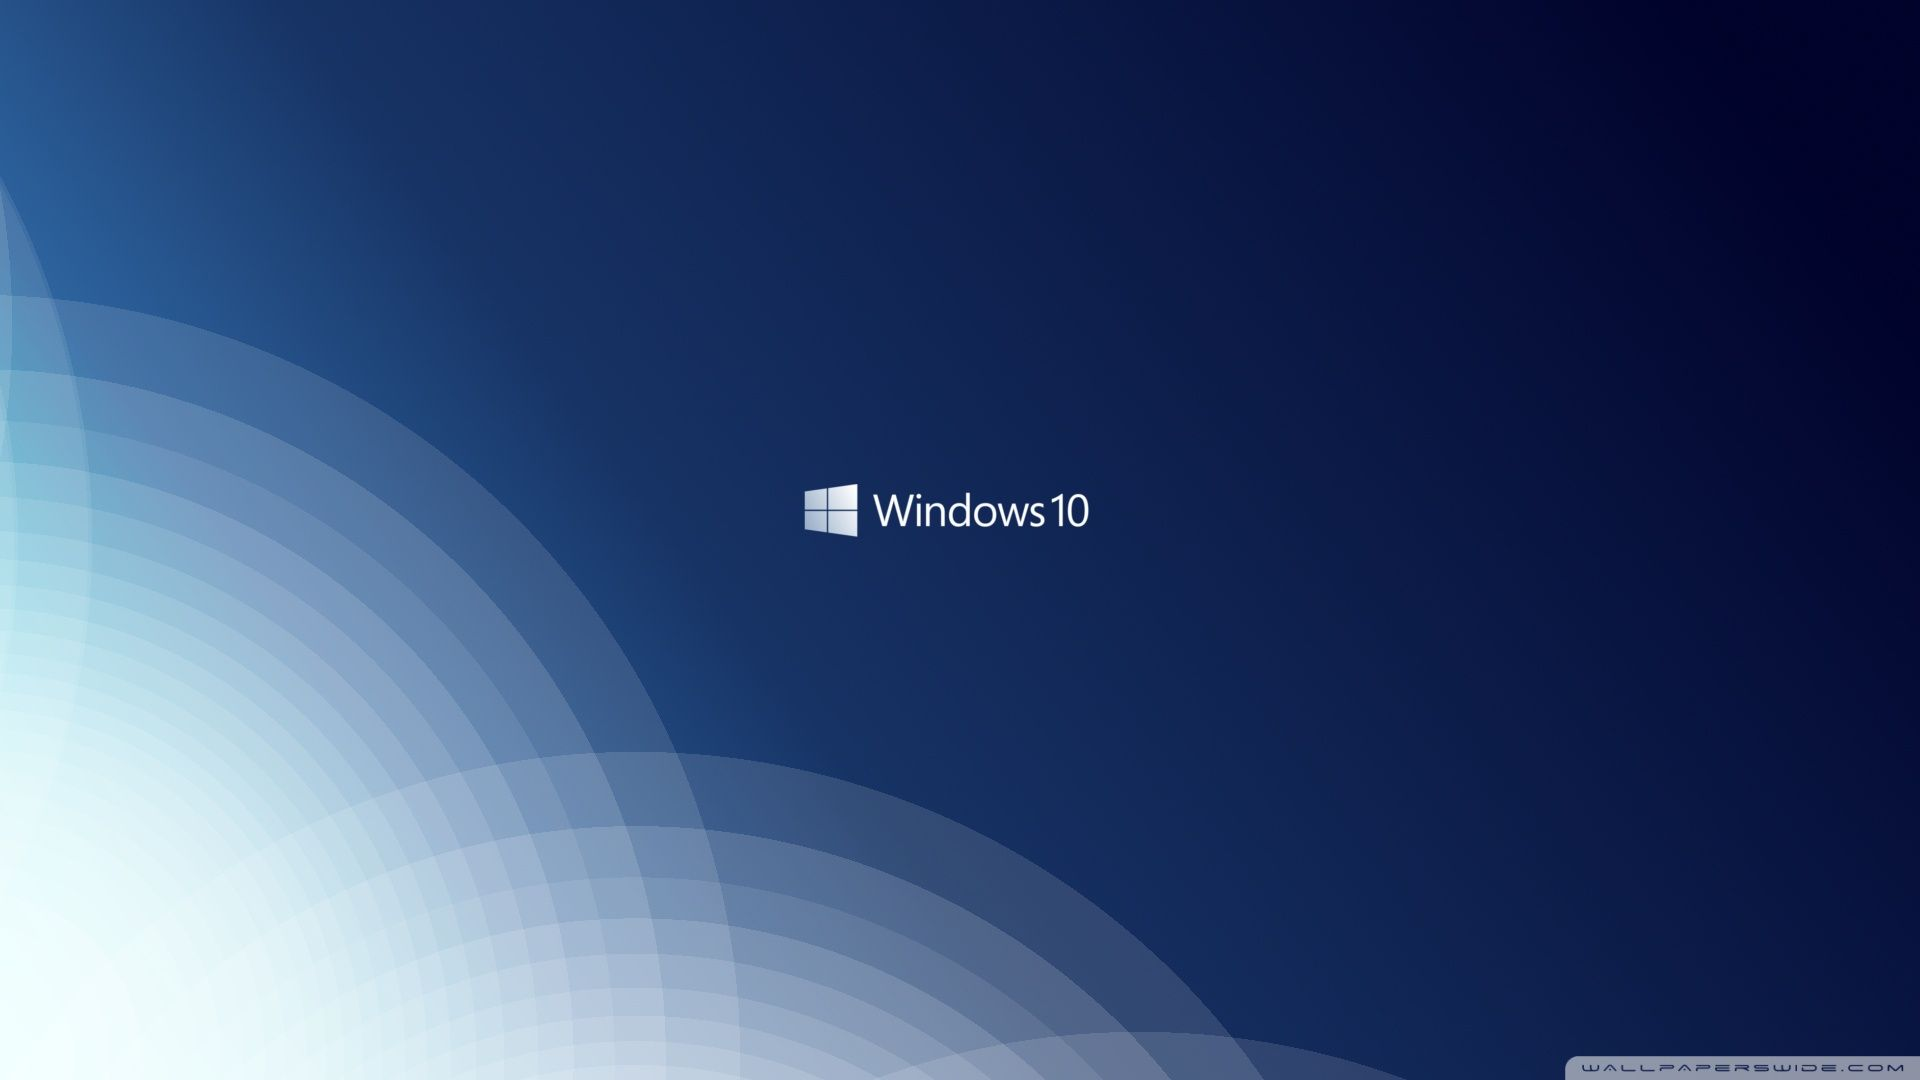 Windows 10 Hd Wallpapers On Wallpaperdog